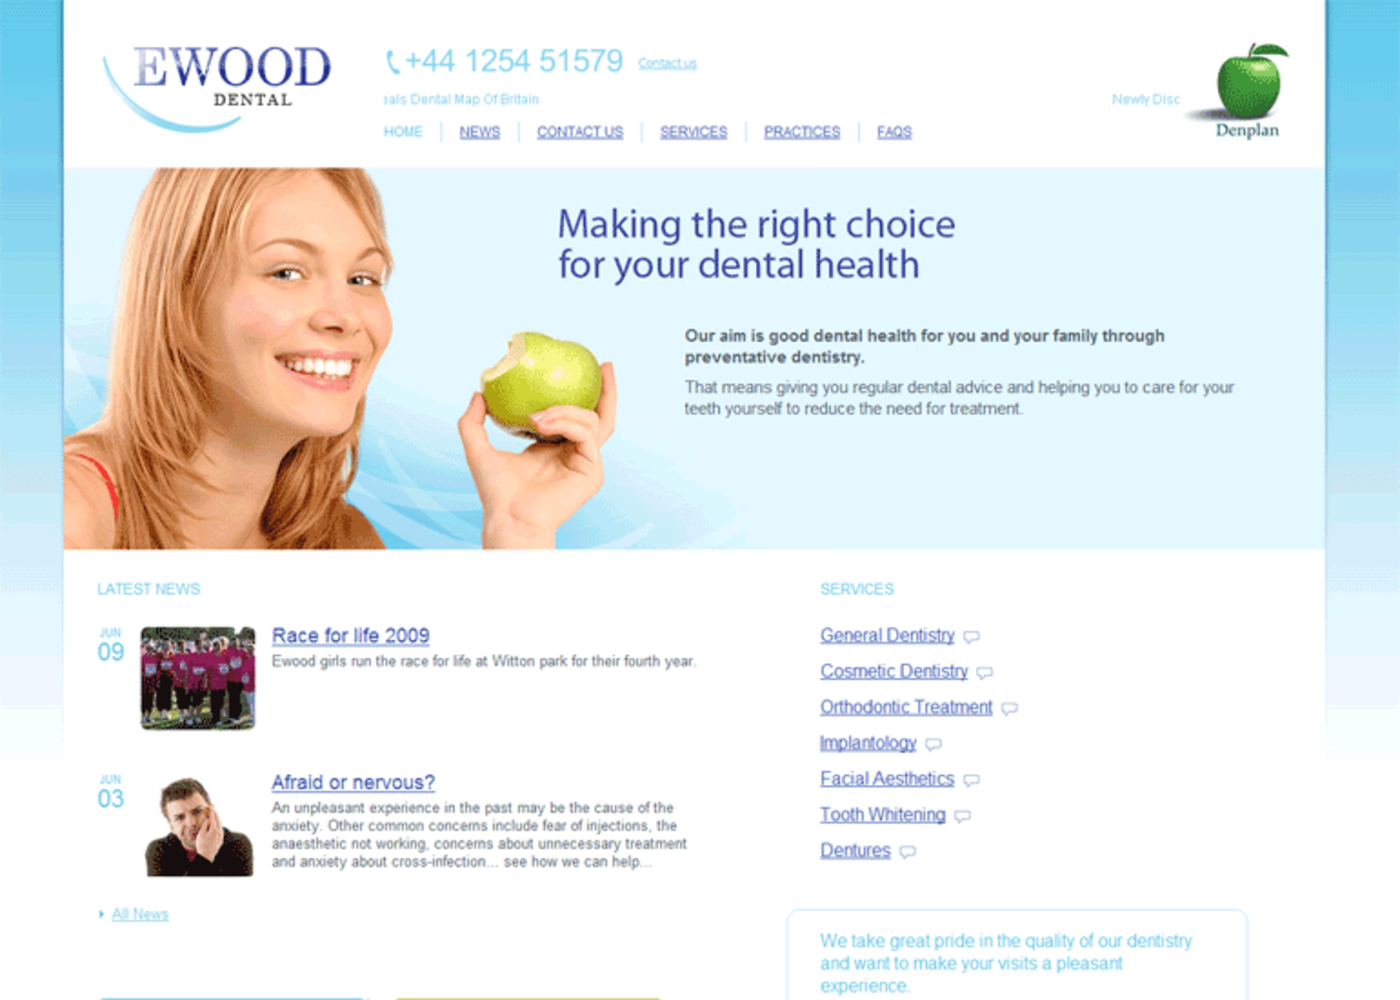 Ewood Dental 2009 Homepage header